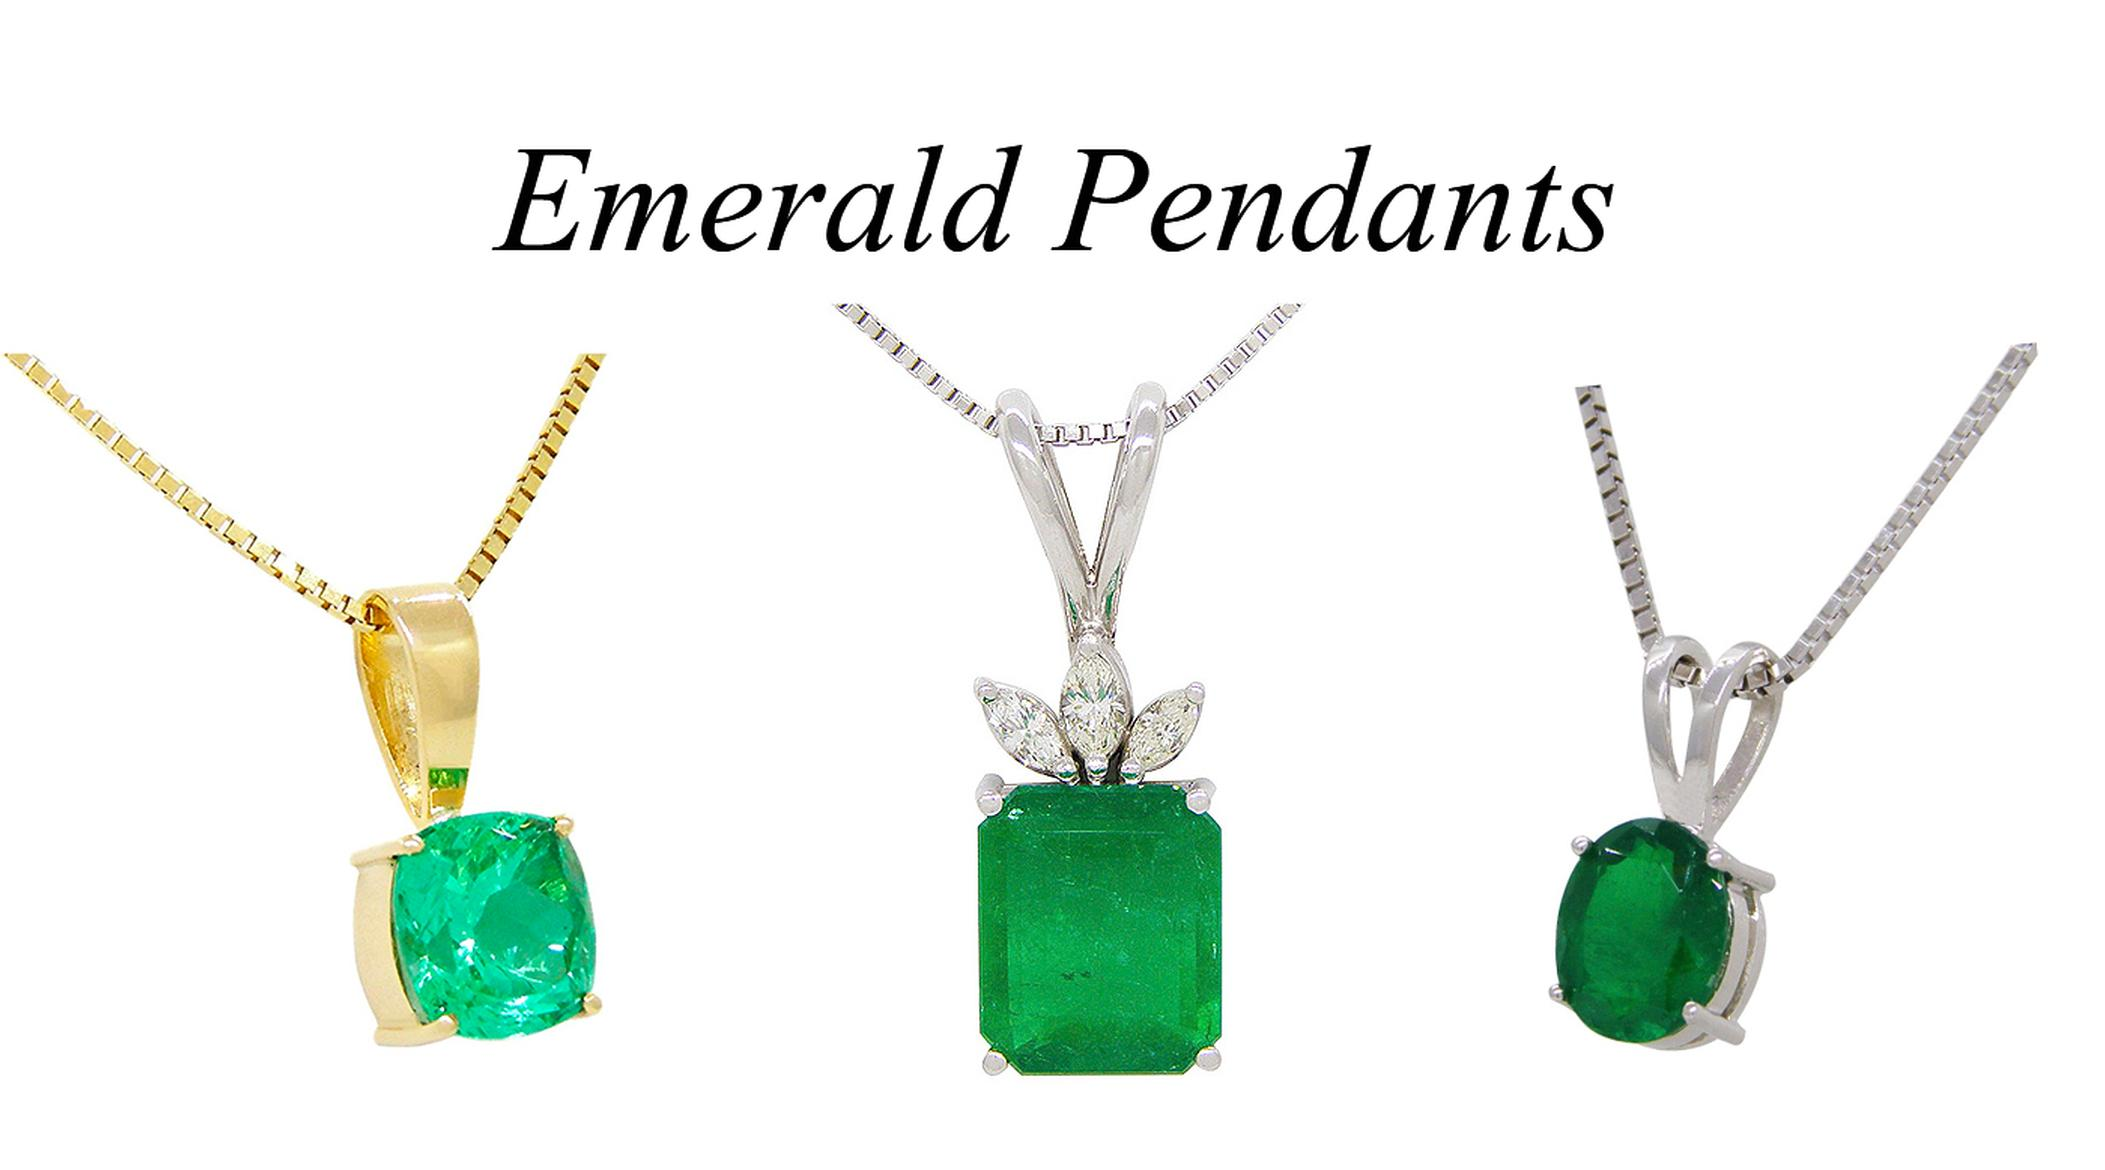 3 Emerald Pendants